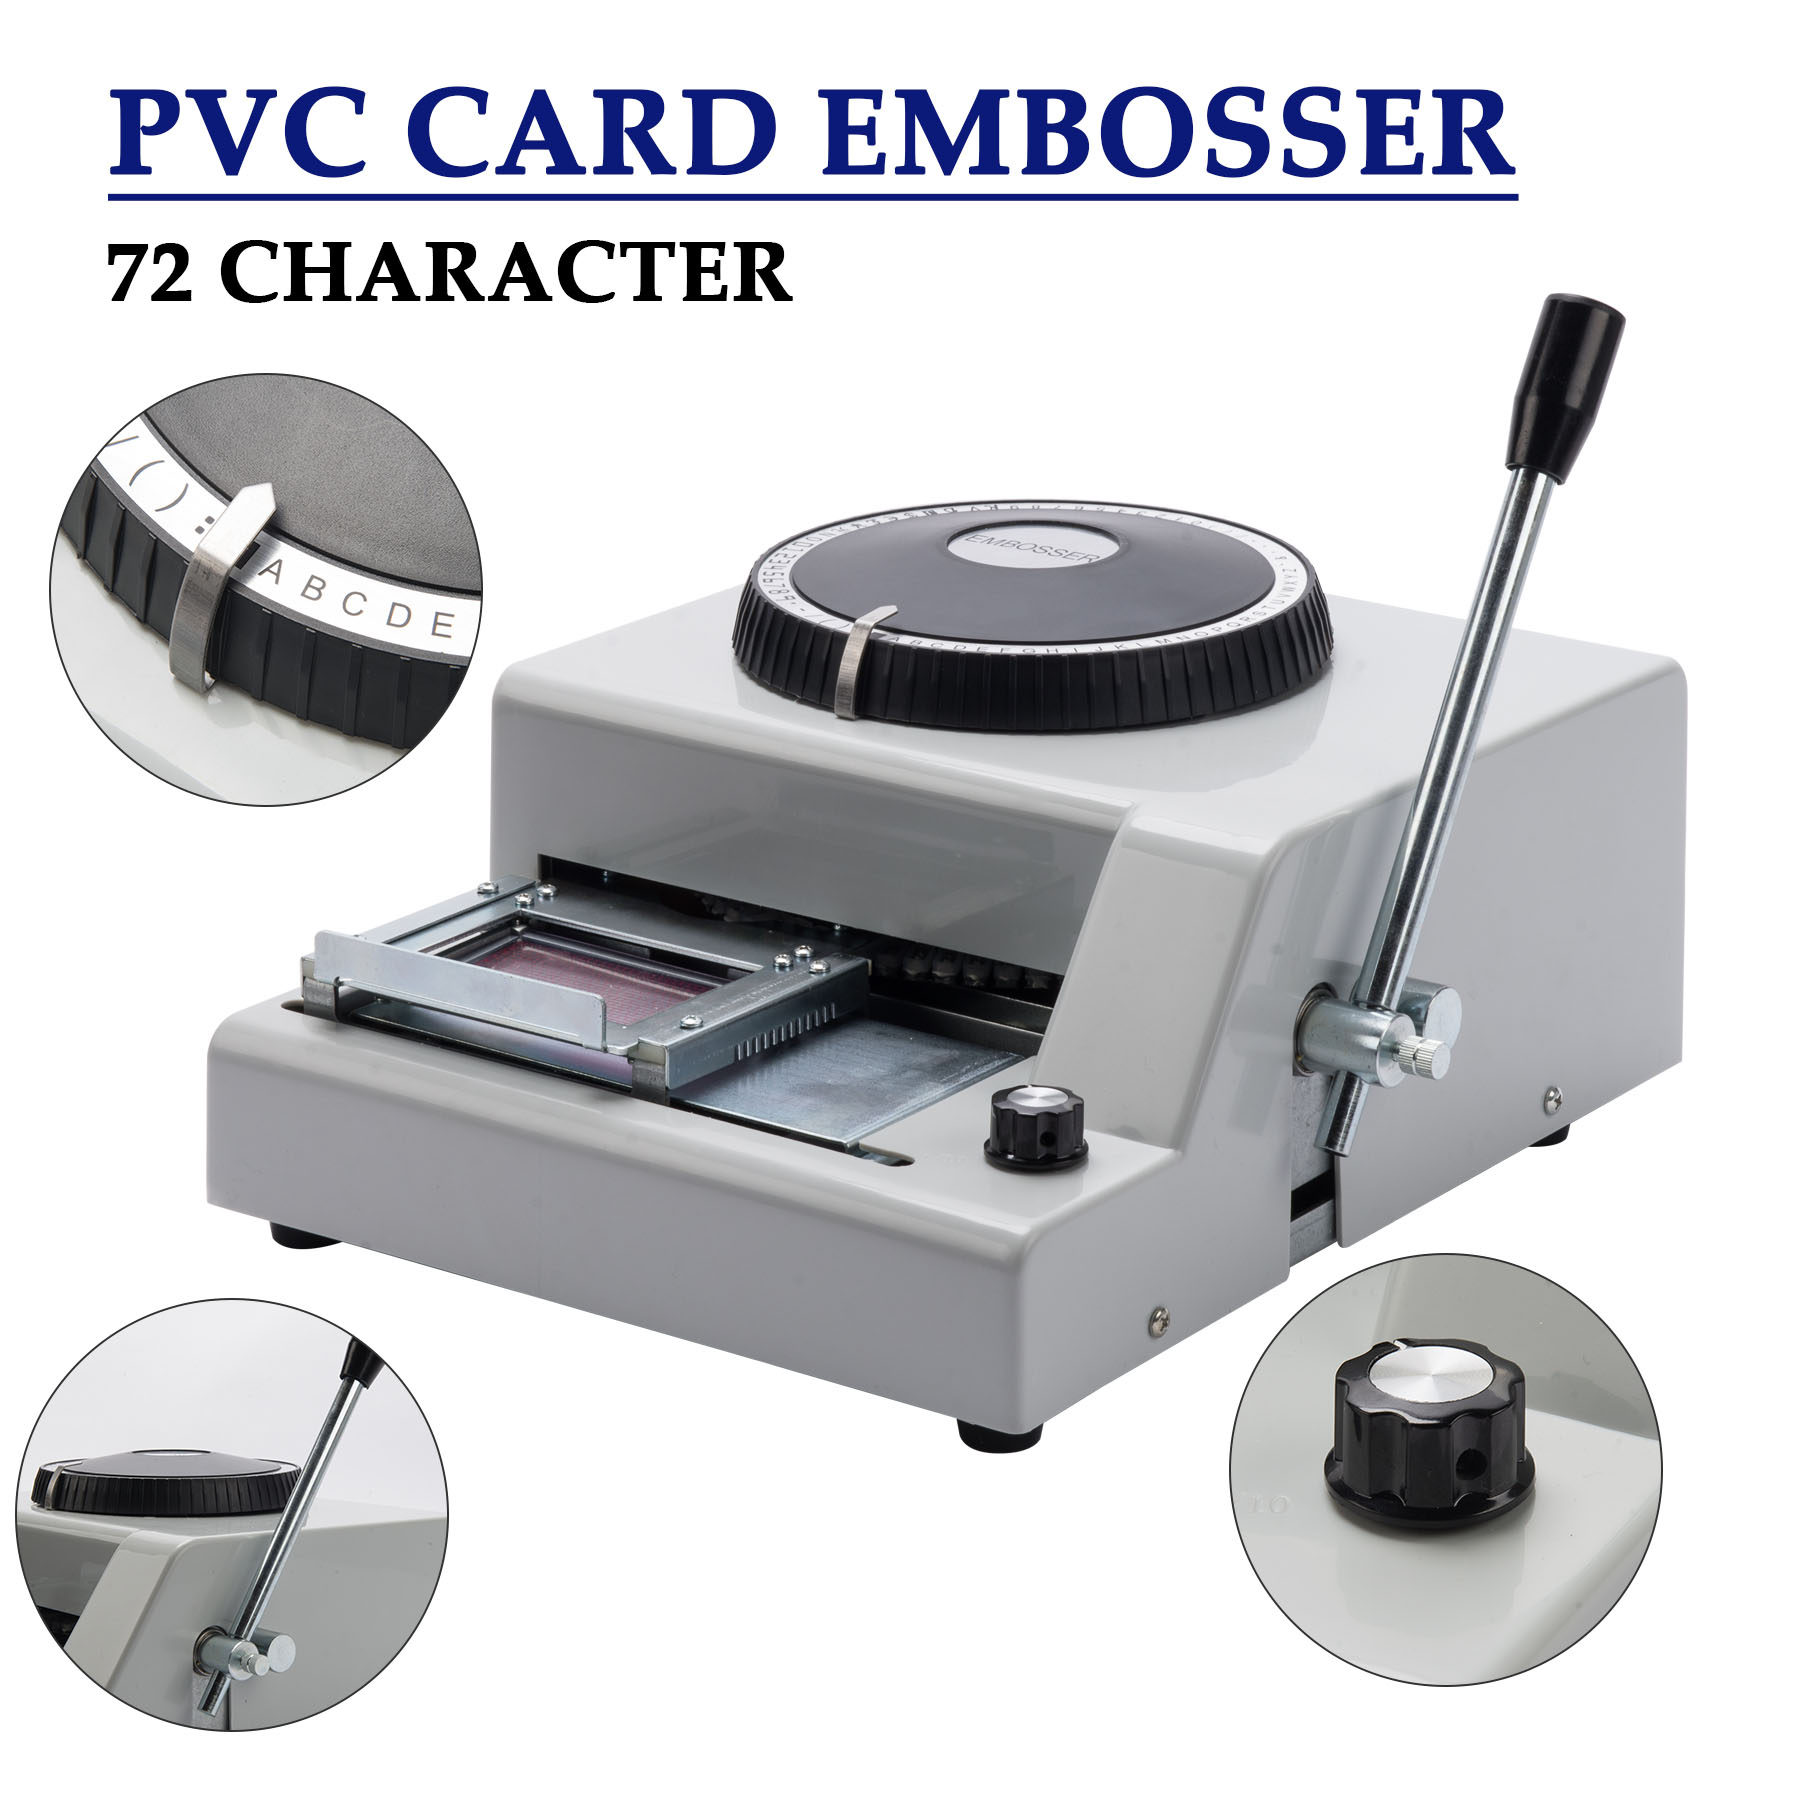 BestEquip Embossing Machine 72 Character Card Embosser Manual Embossing Machine for PVC Gift Card Credit ID VIP Manual Embosser Machine Credit Gift Card